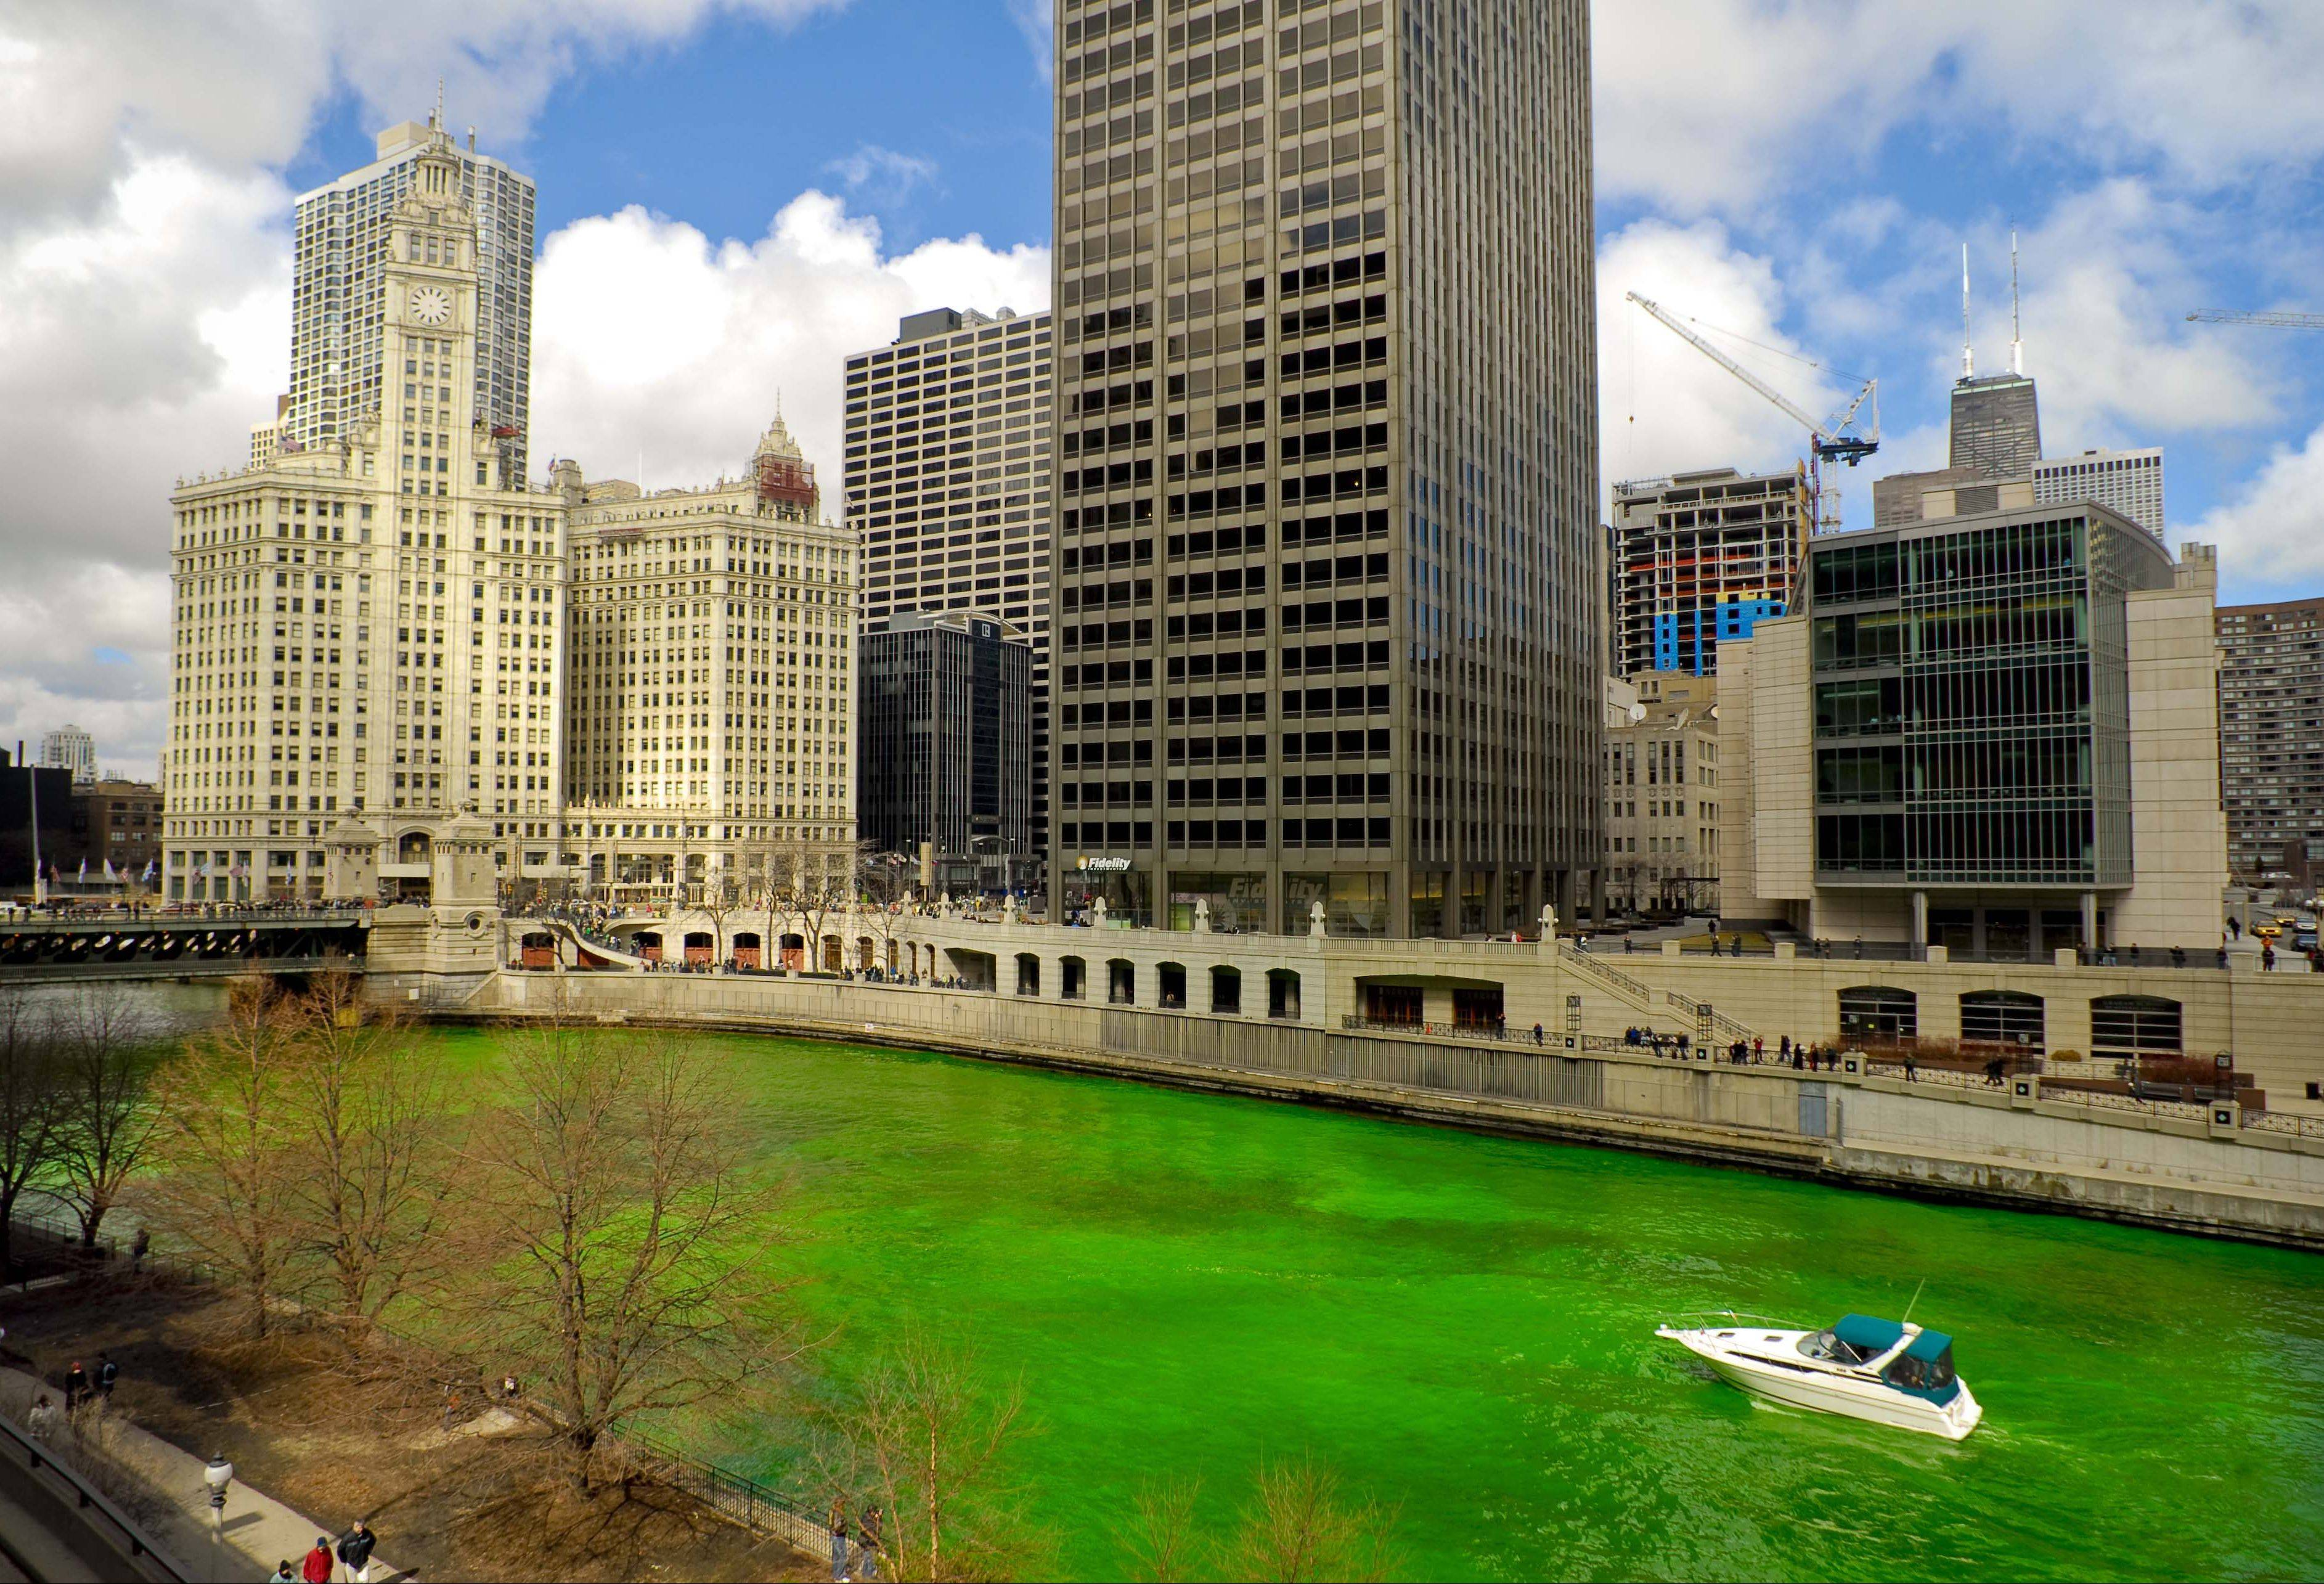 The Chicago River will be dyed green for the St. Patrick's Day Saturday.